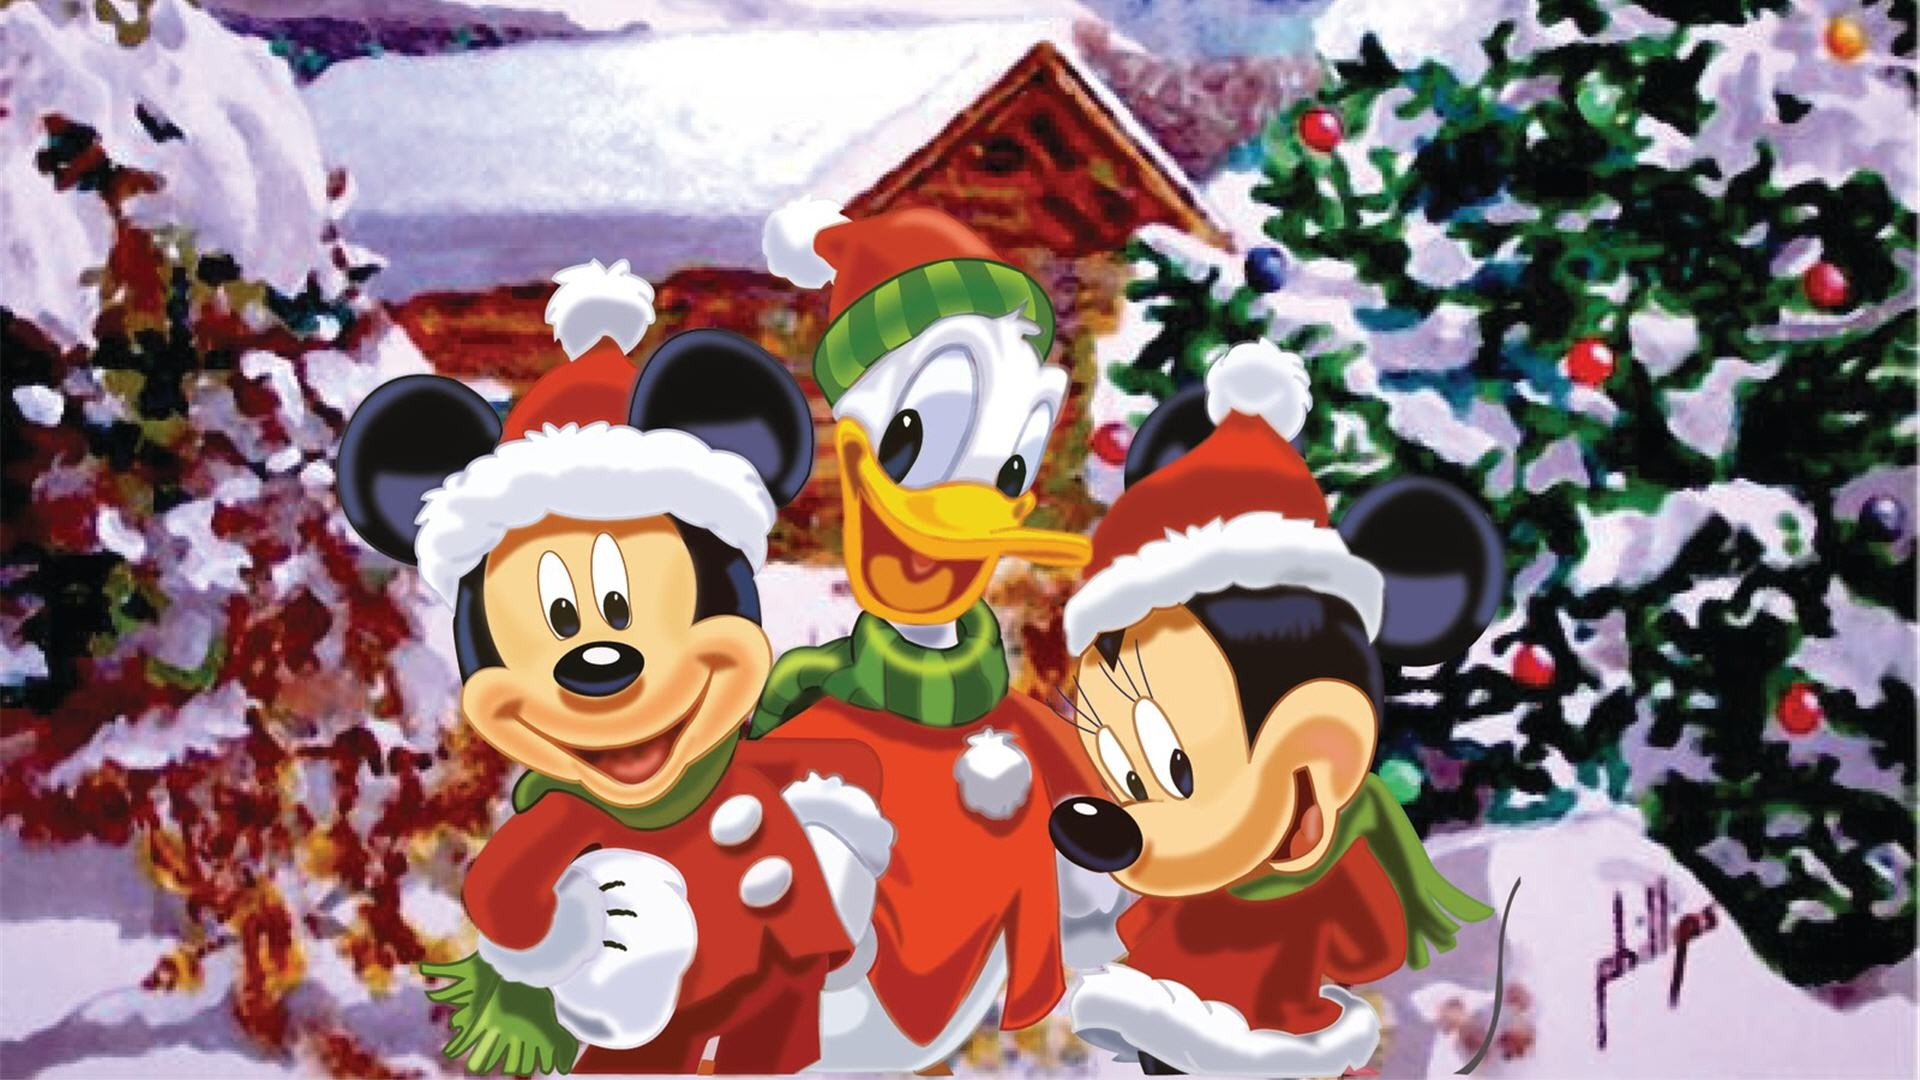 1920x1080 Download free Mickey Mouse Christmas Wallpapers